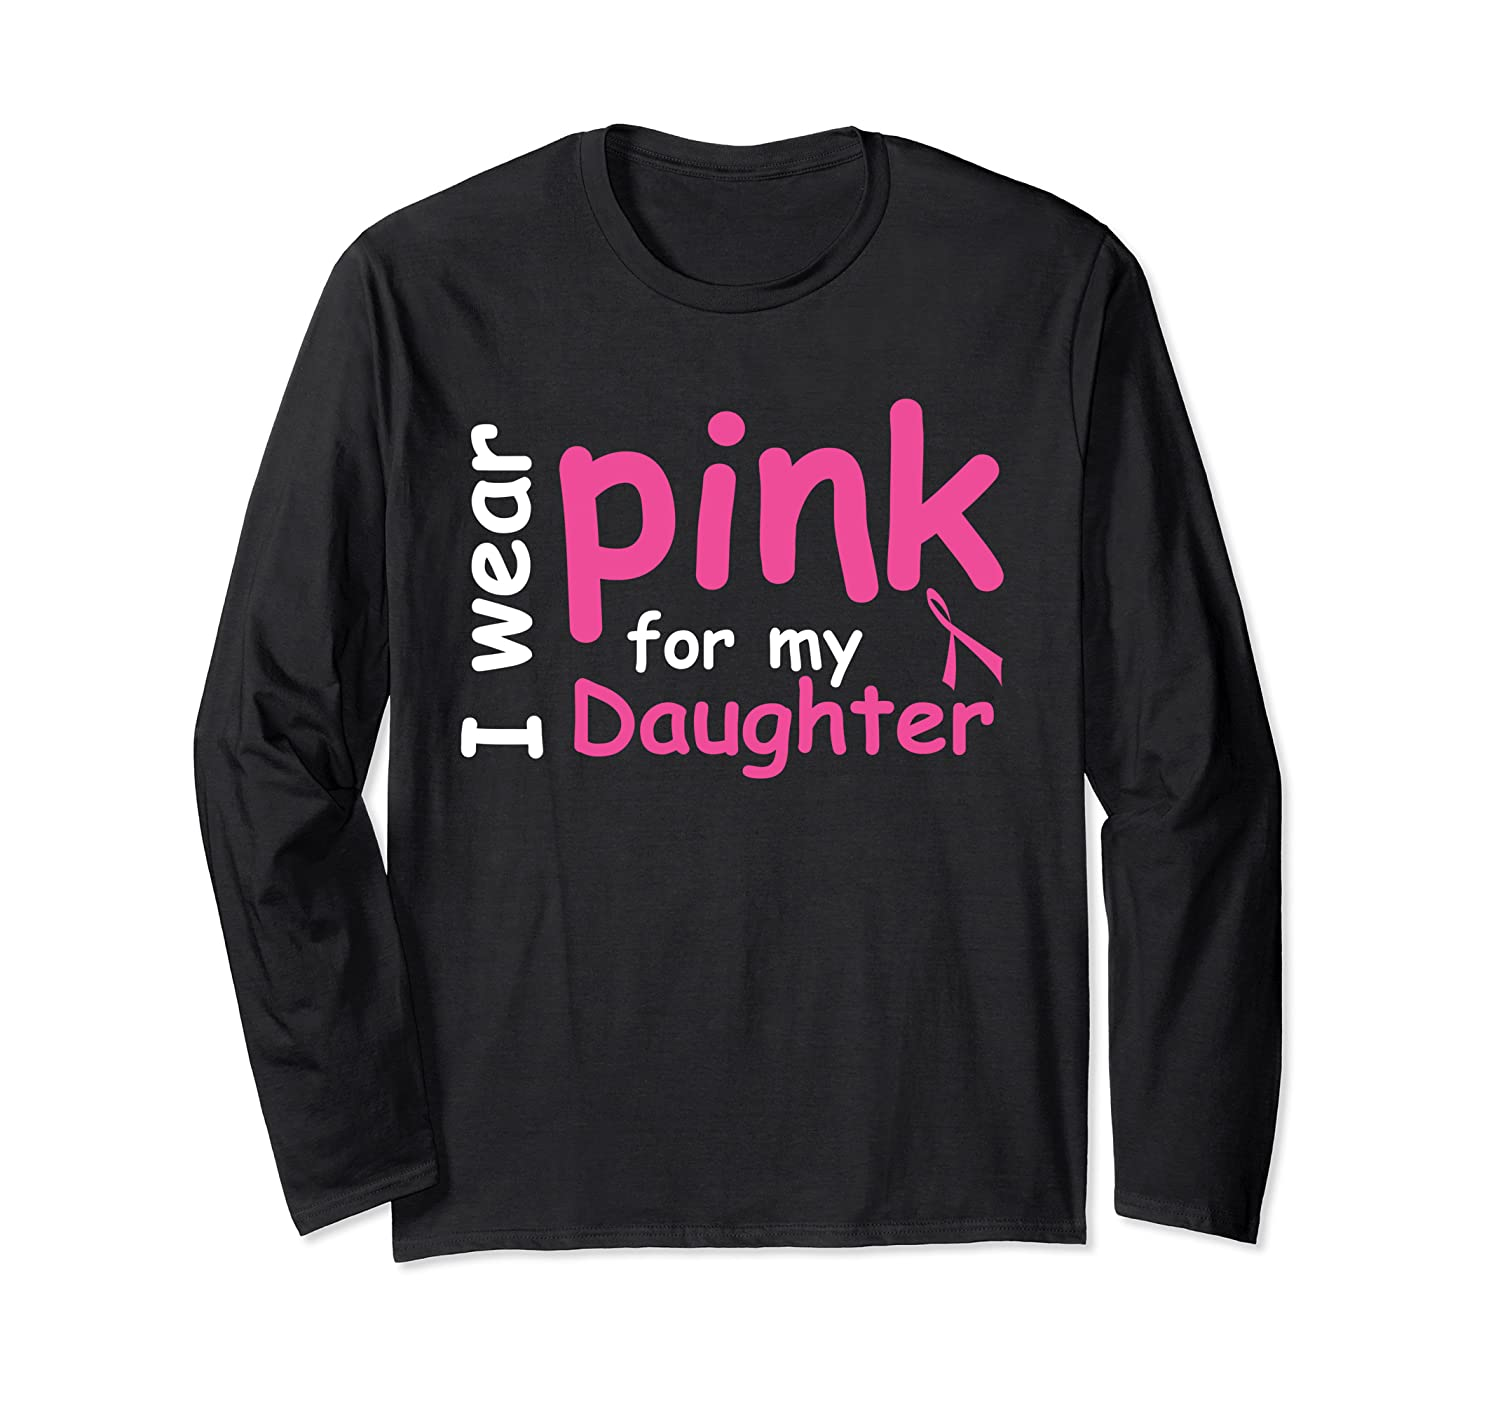 Breast Cancer Chemo Awareness Month T Shirt